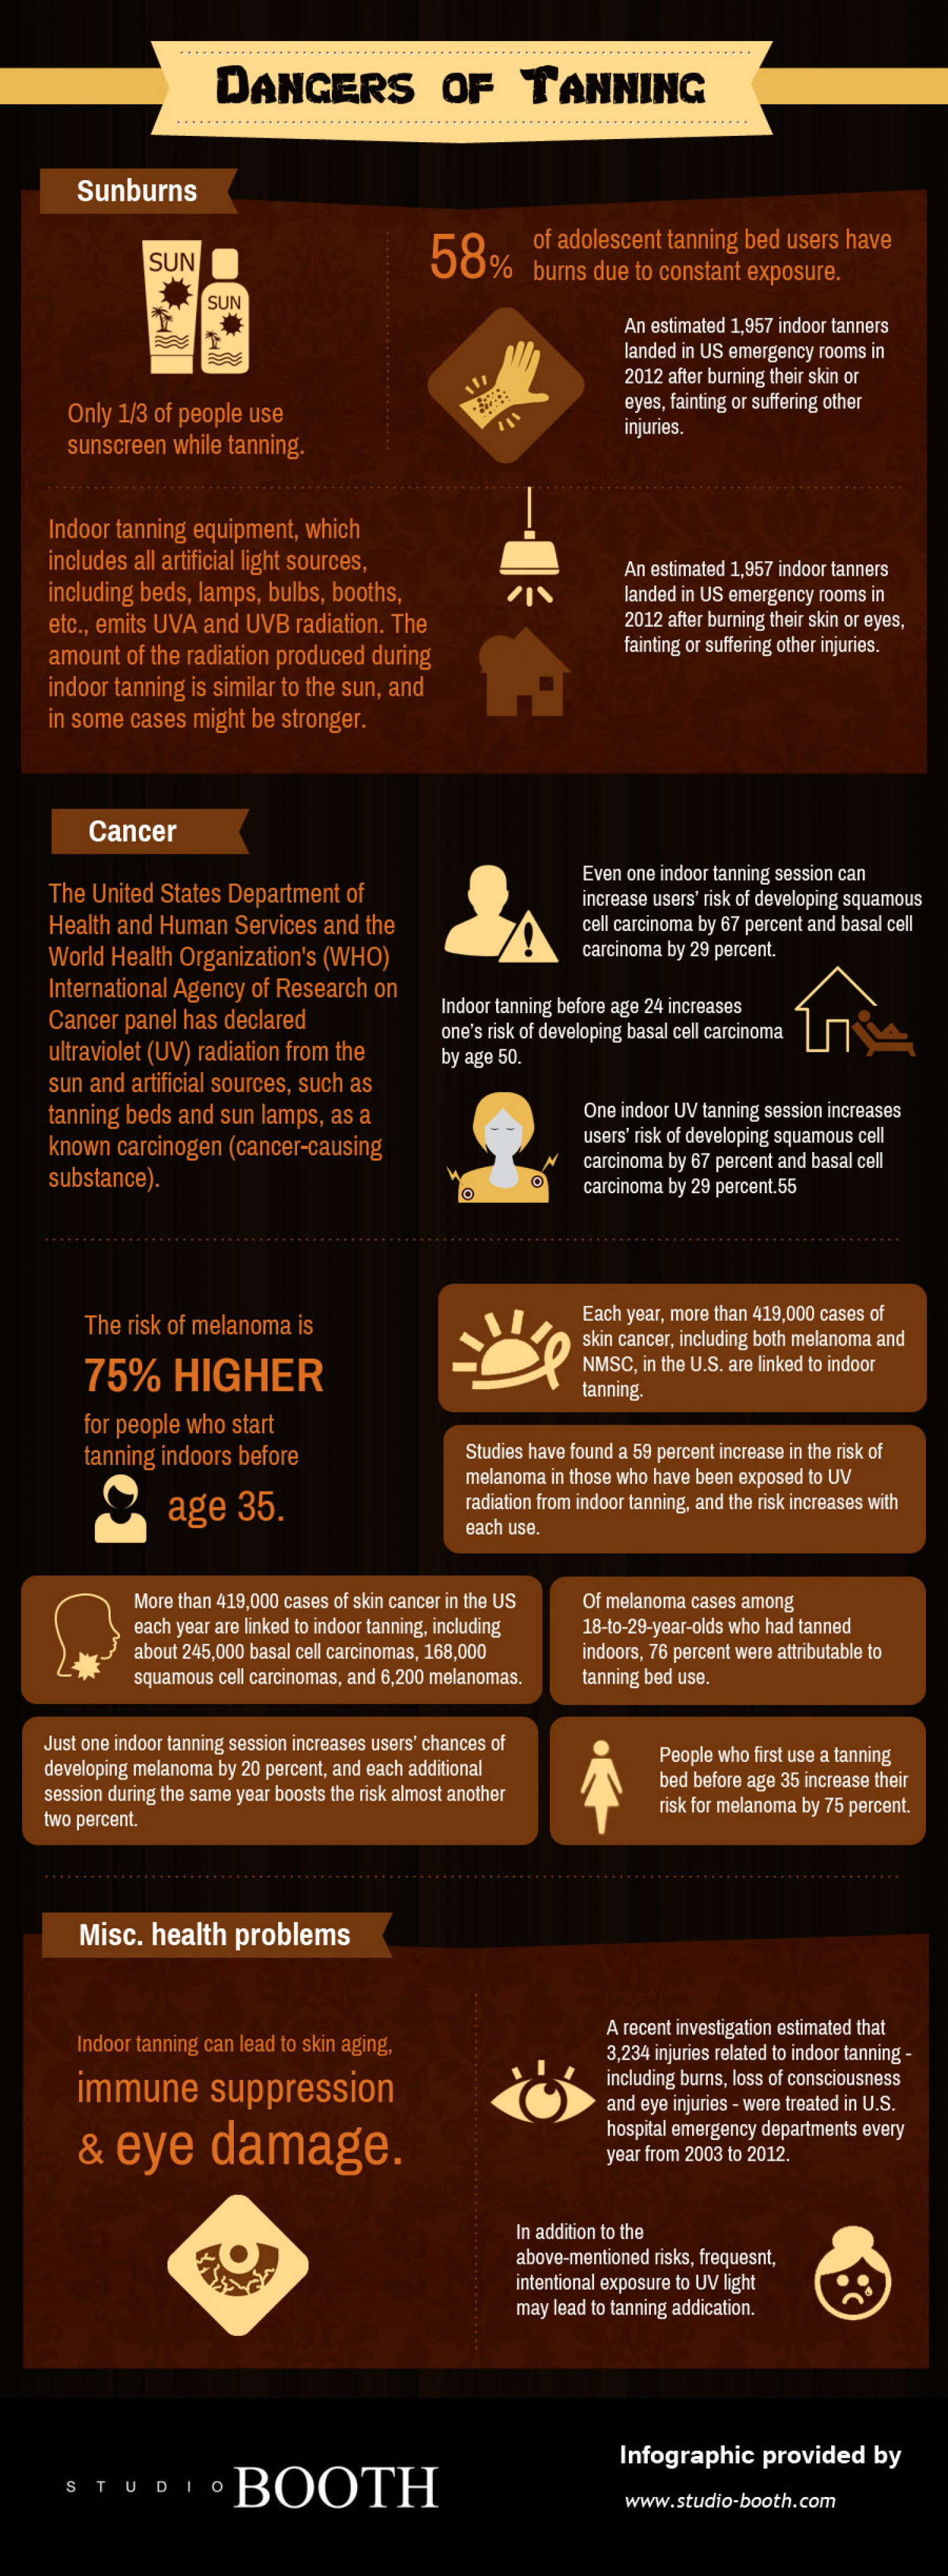 Dangers of Tanning Infographic